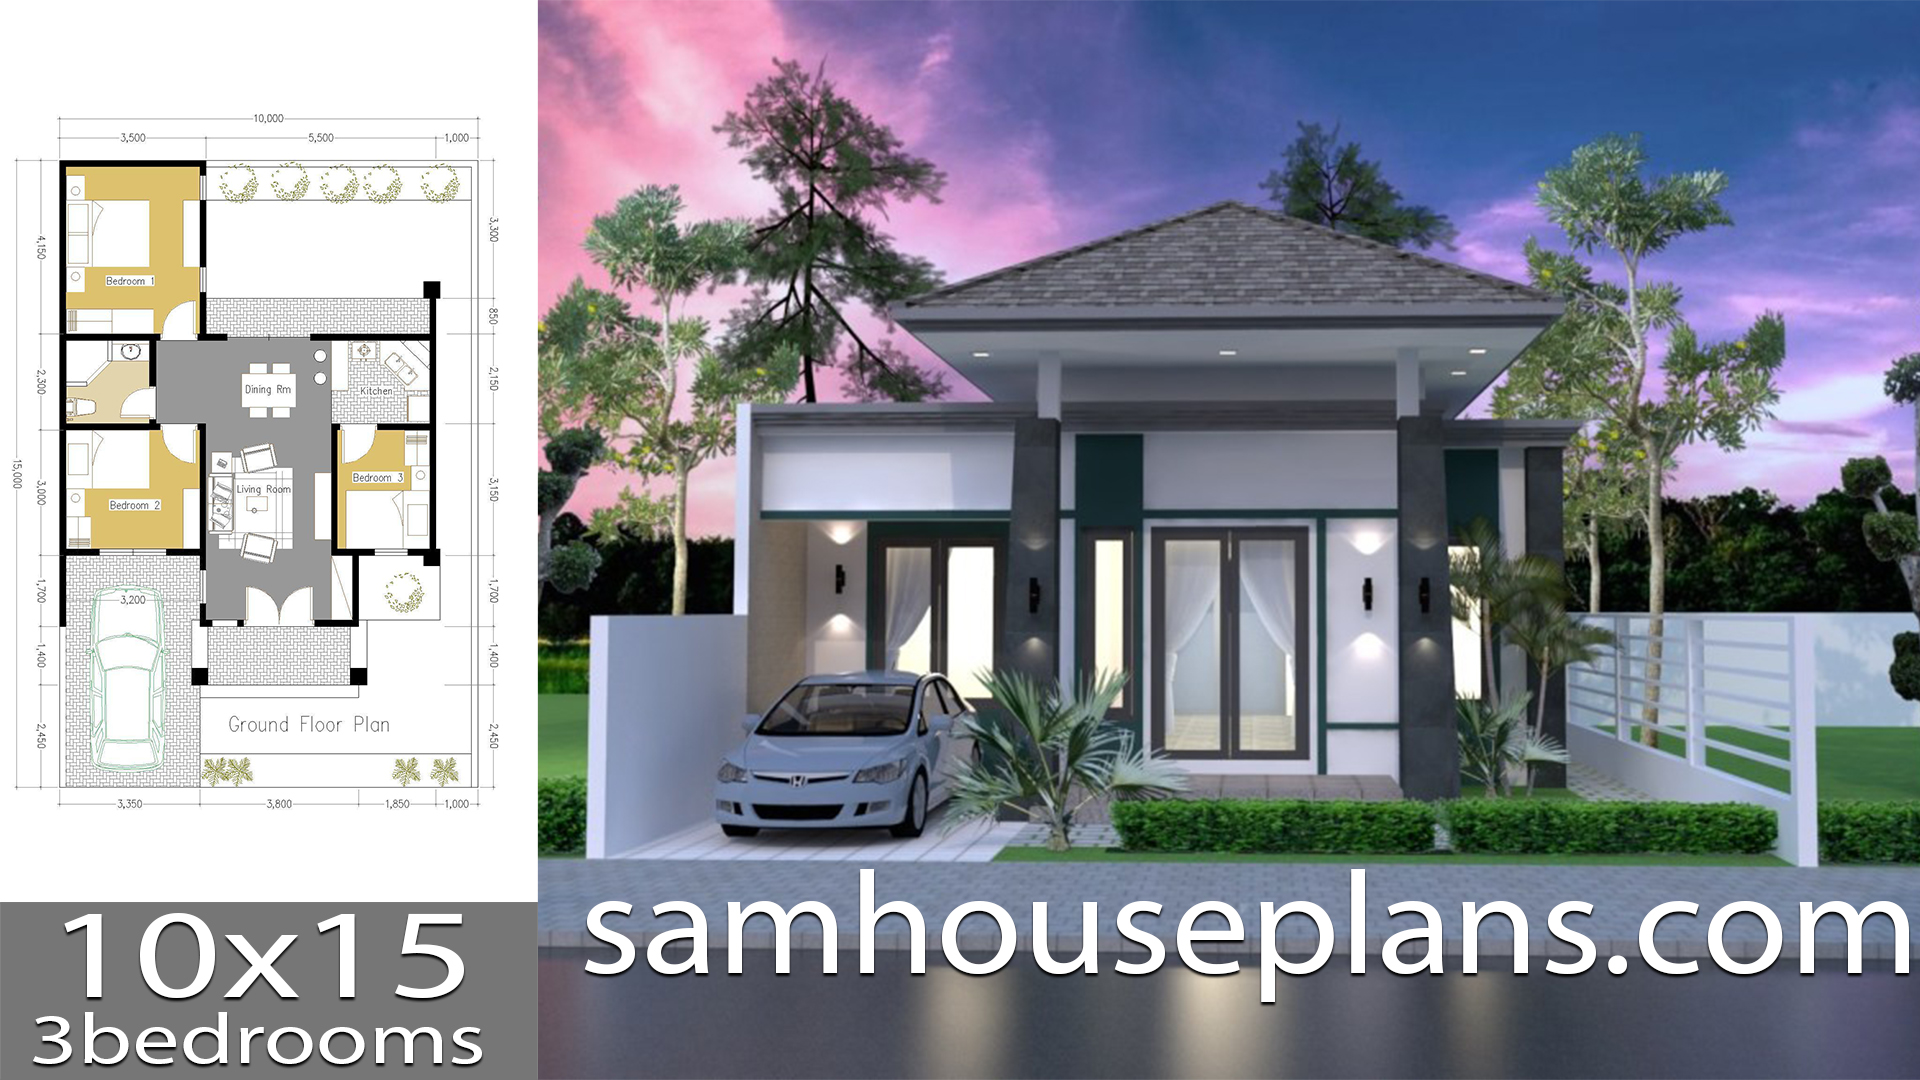 House Plans 10x15 with 3 Bedrooms - Sam House Plans